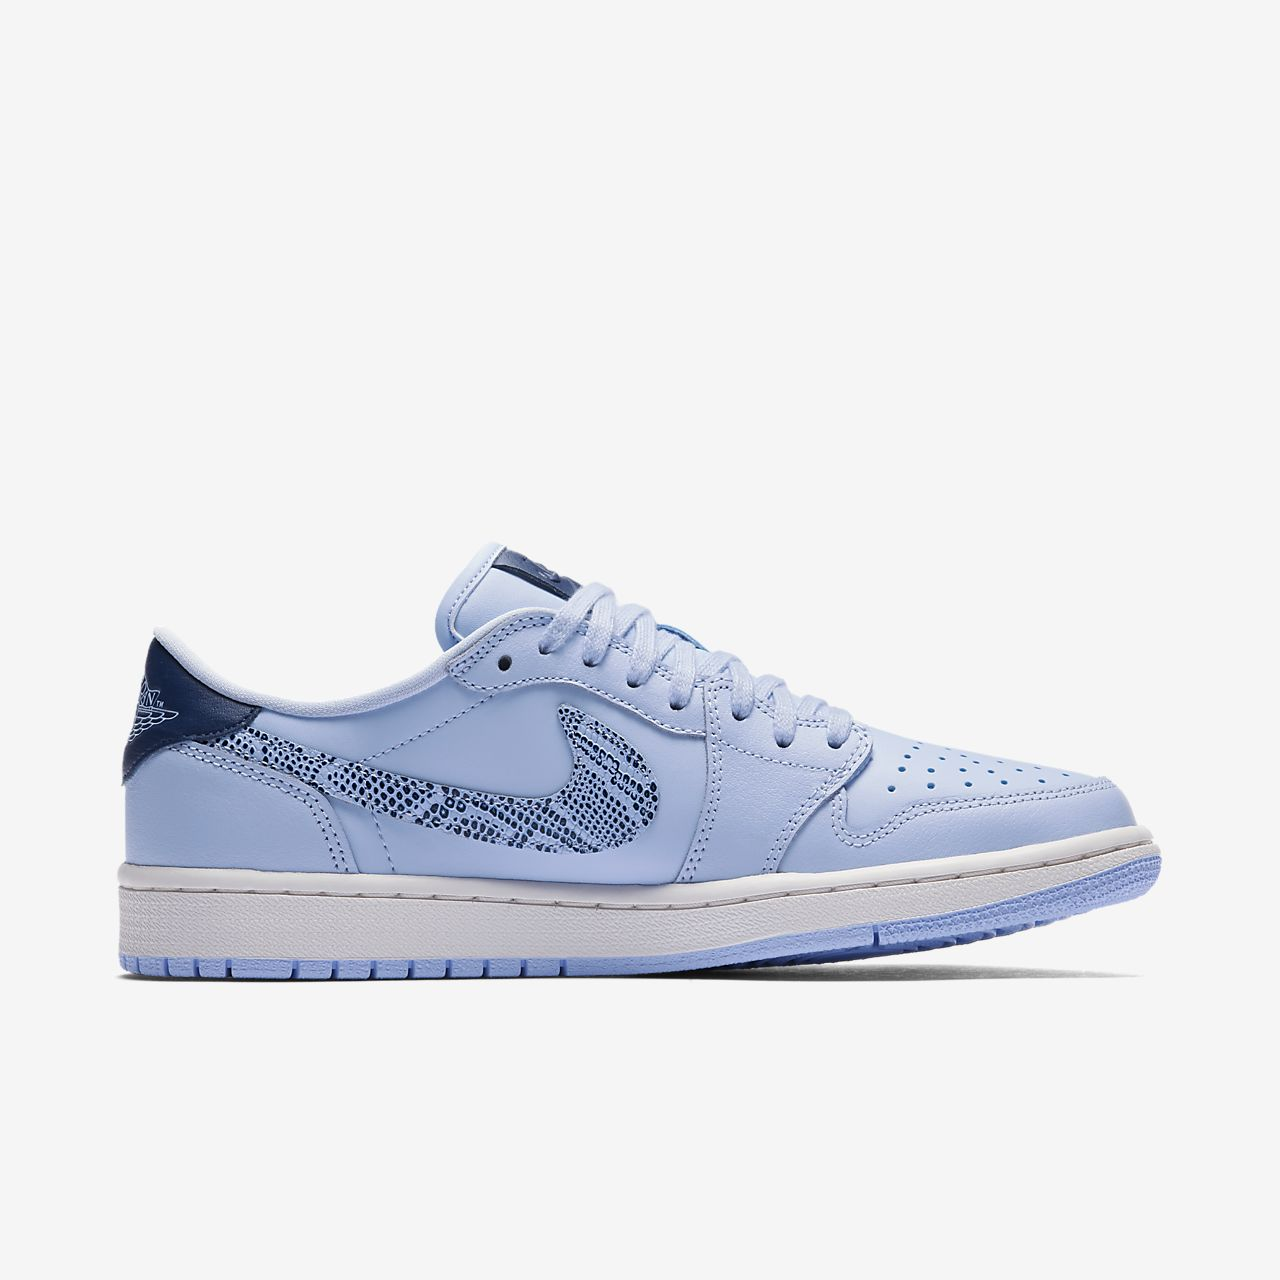 f3d00672e7929a Air Jordan 1 Retro Low OG Women s Shoe. Nike.com ZA